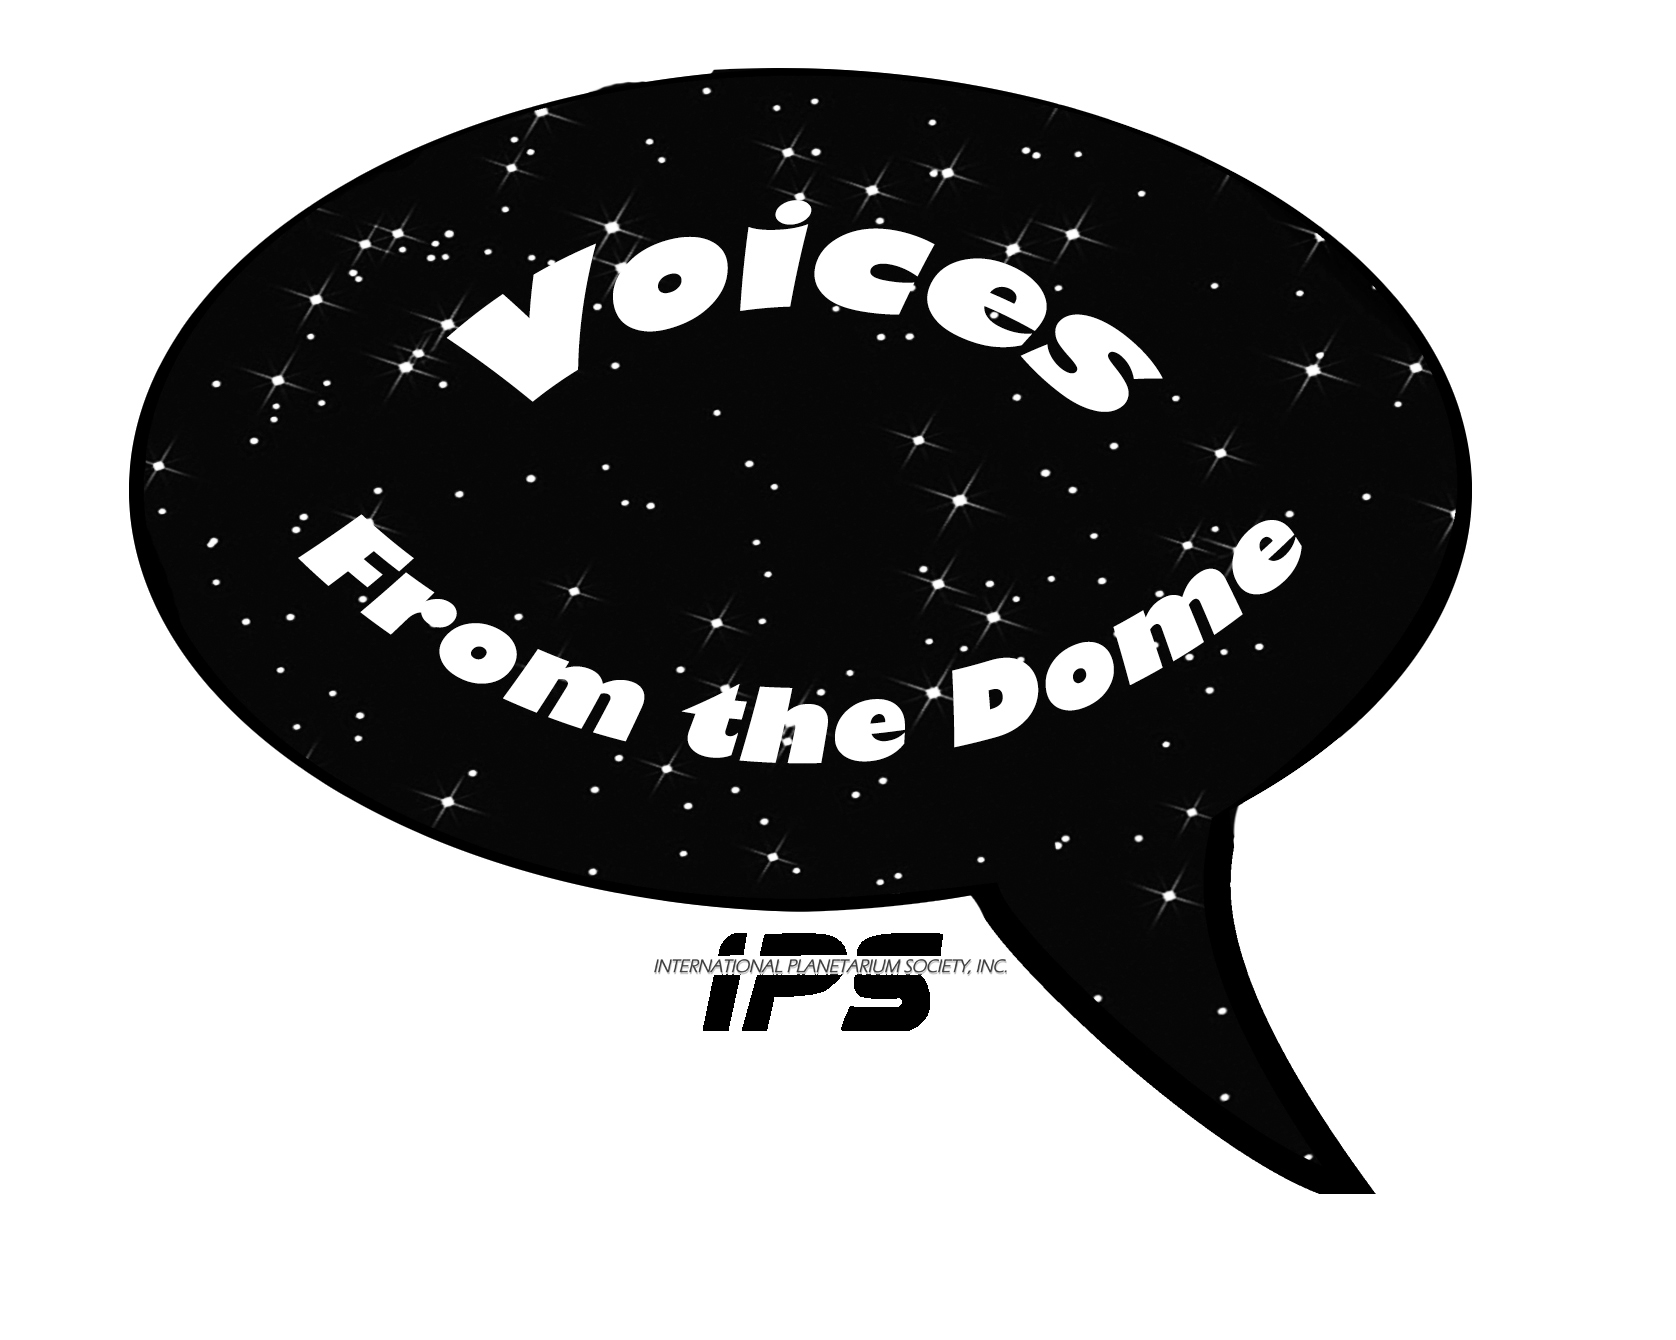 Voices from the dome logo